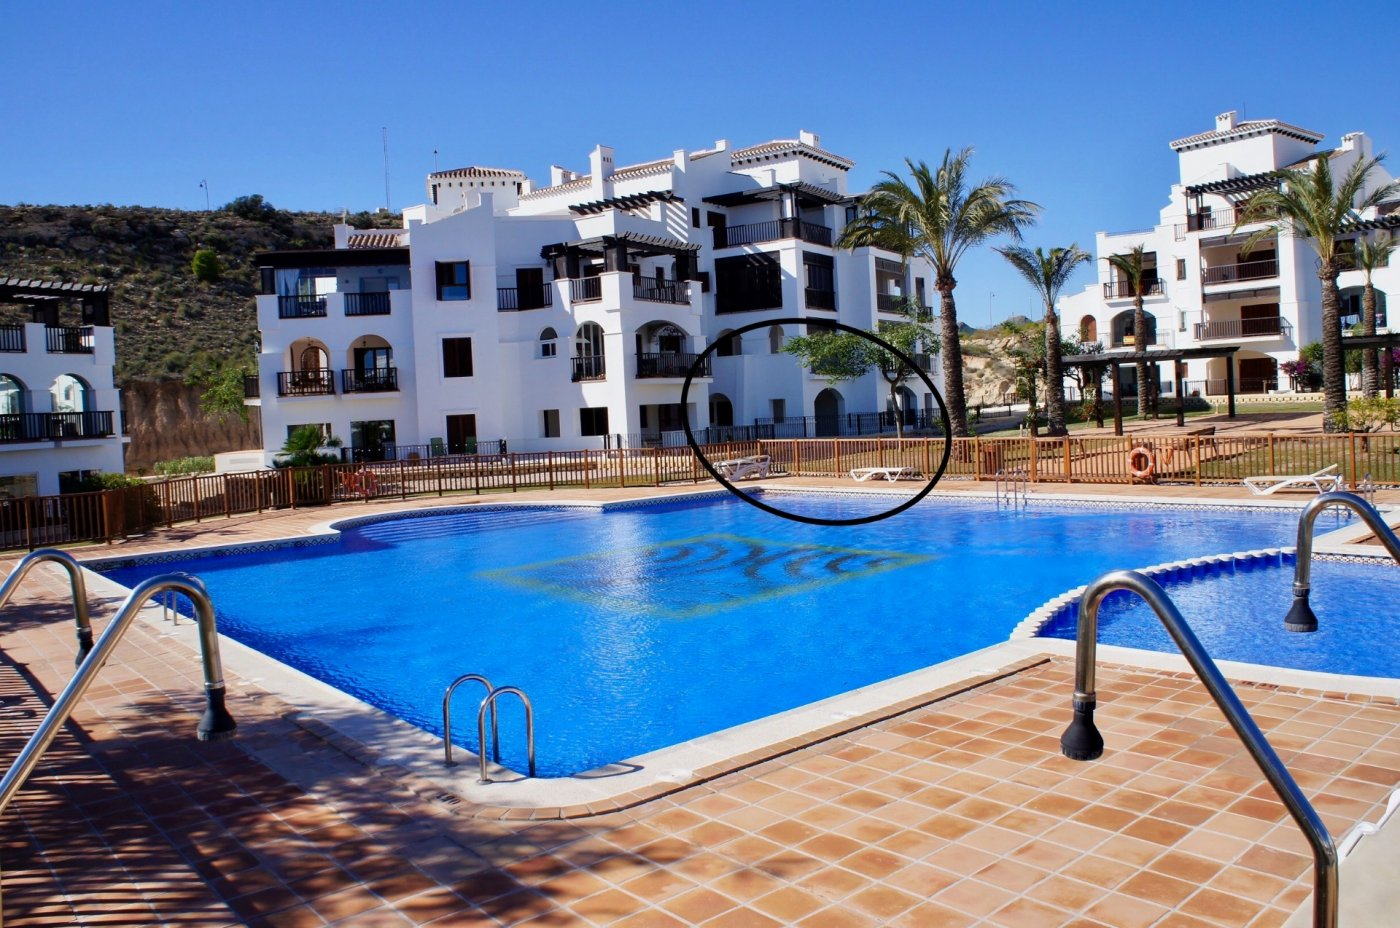 Apartment ref 3265-02778 for sale in El Valle Golf Resort Spain - Quality Homes Costa Cálida